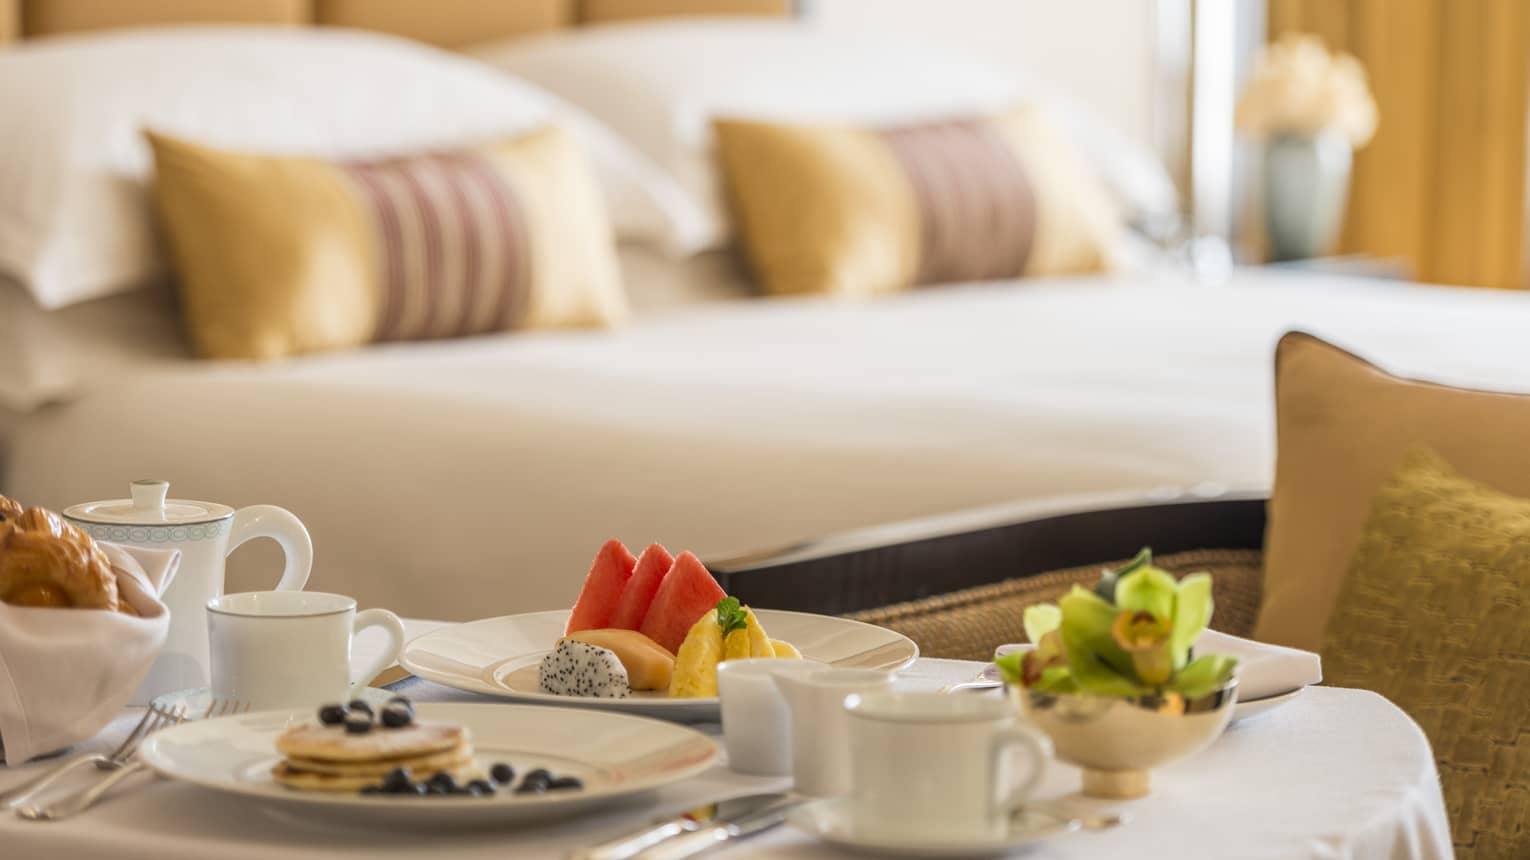 Pancakes, coffee, fresh fruit breakfast items on in-room dining table in front of bed